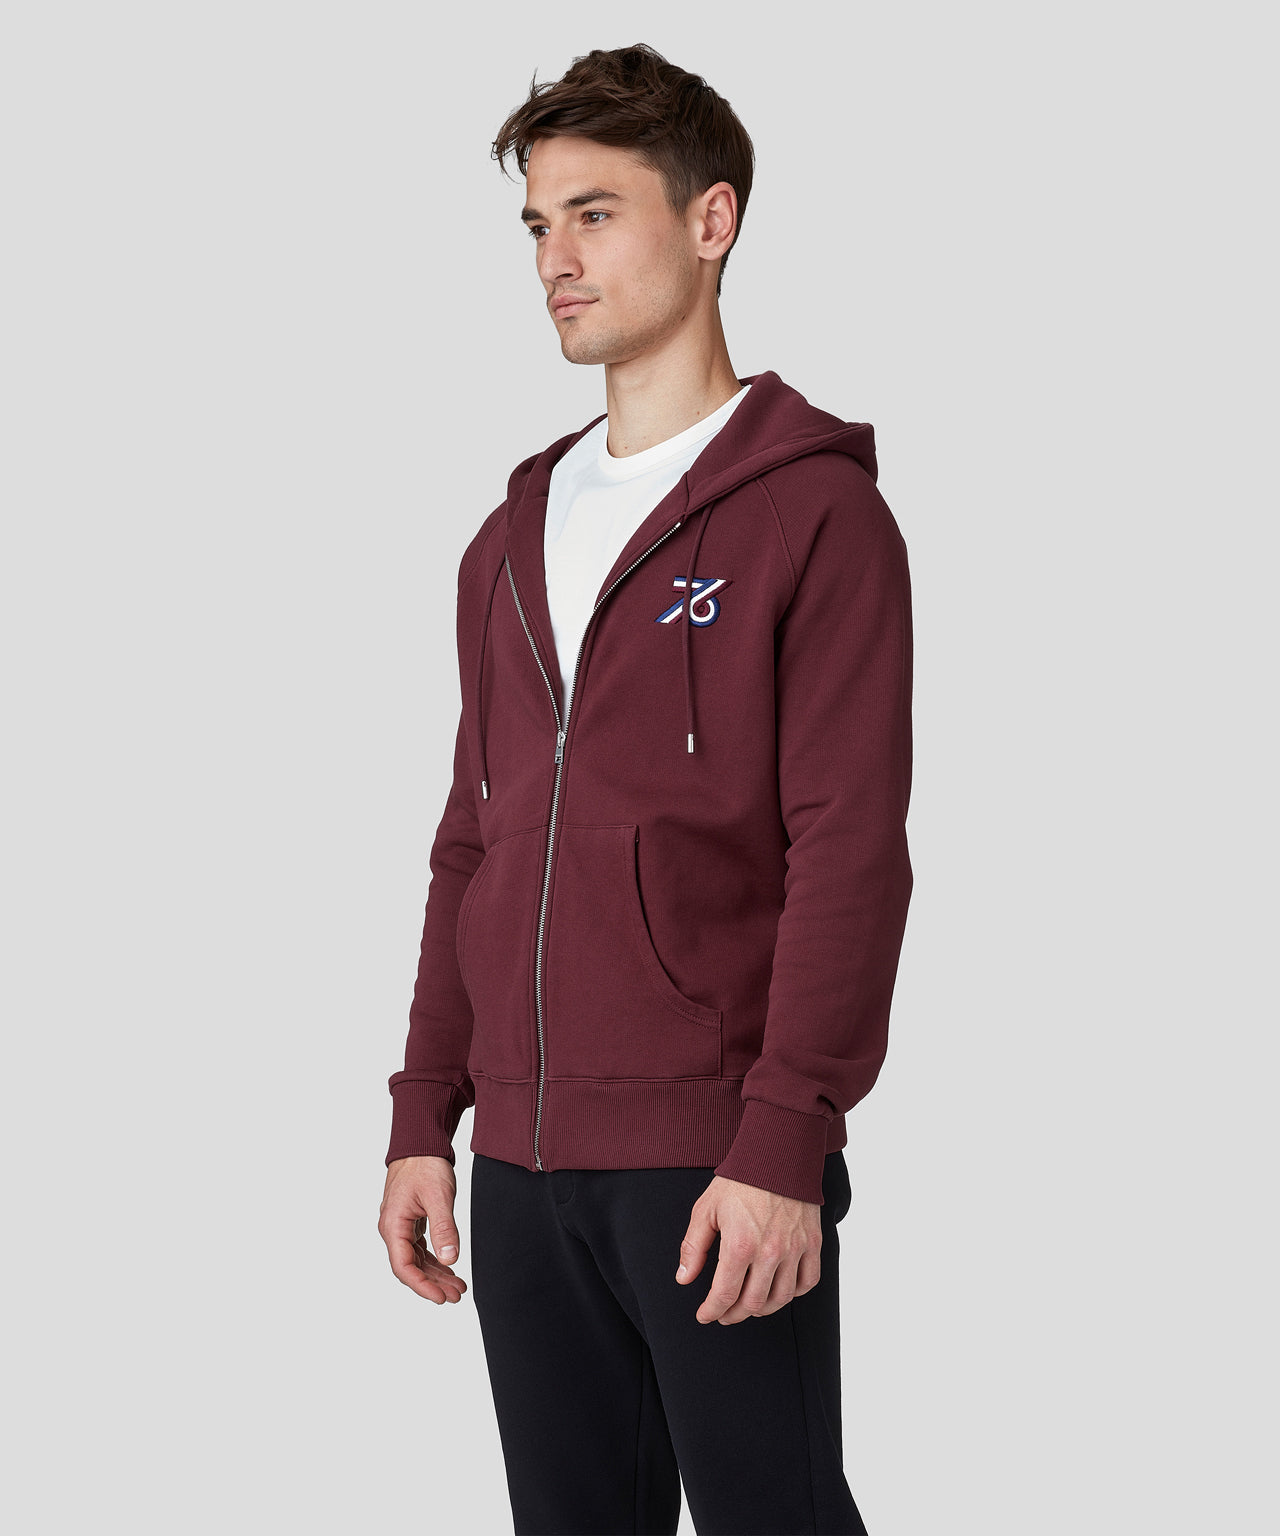 Zipped Hoodie 76 - burgundy red